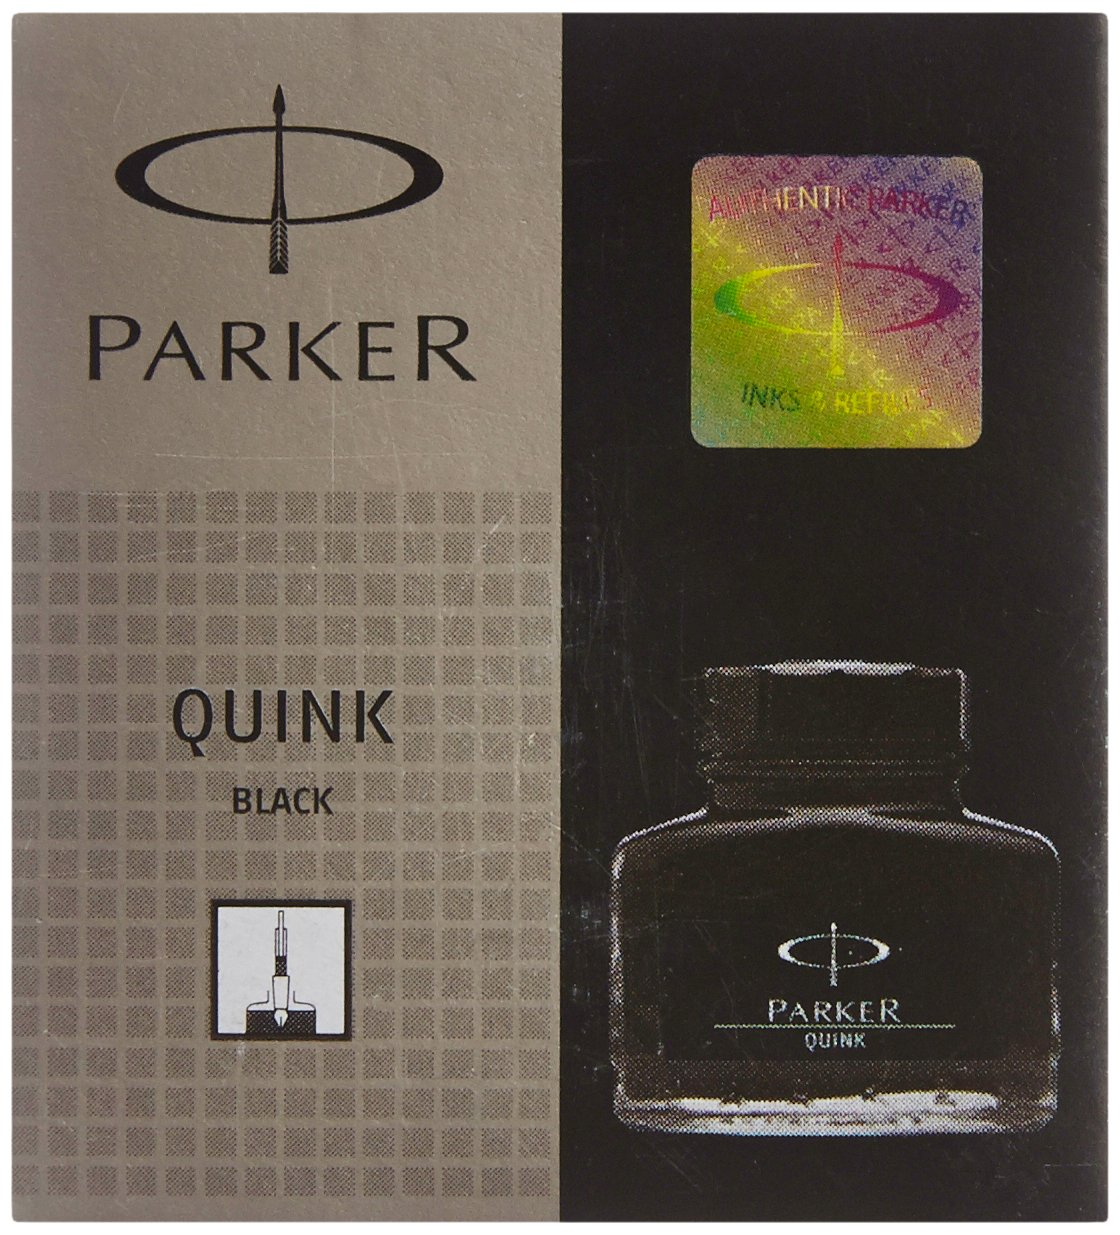 Parker Quink Ink Bottle (Black)